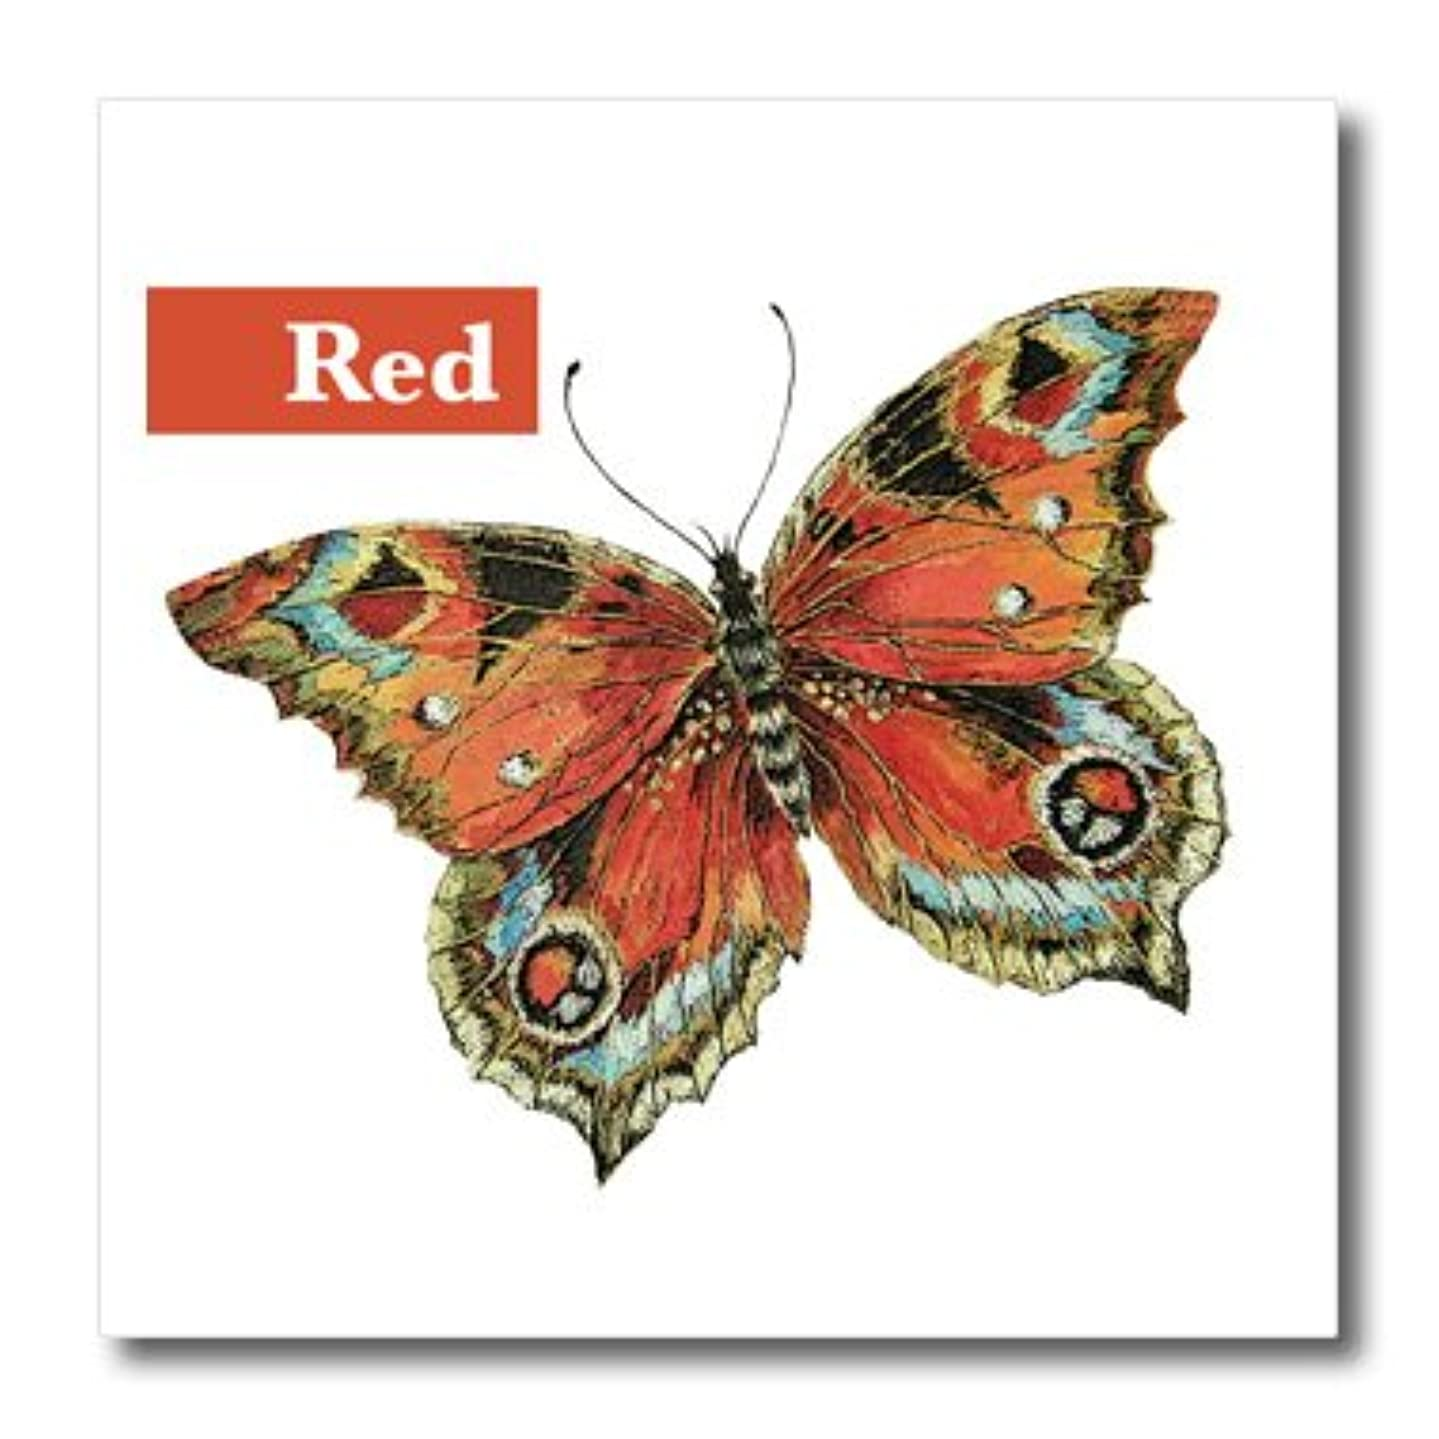 3dRose ht_200542_1 Butterfly Red, Vintage Butterfly Iron on Heat Transfer, 8 by 8